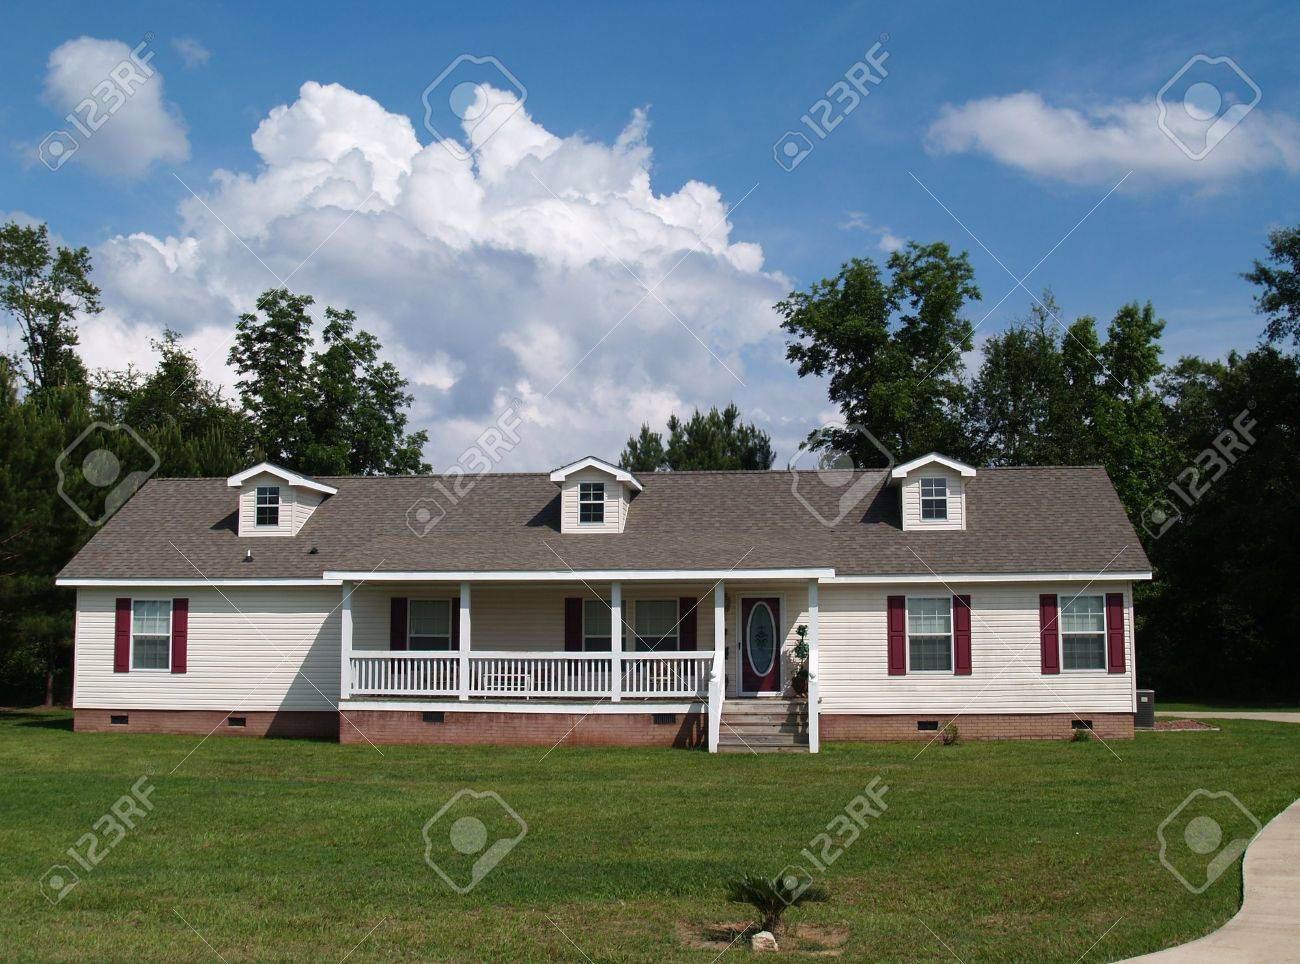 One story residential home with vinyl siding on the facade and a brick foundation. Stock Photo - 5168201